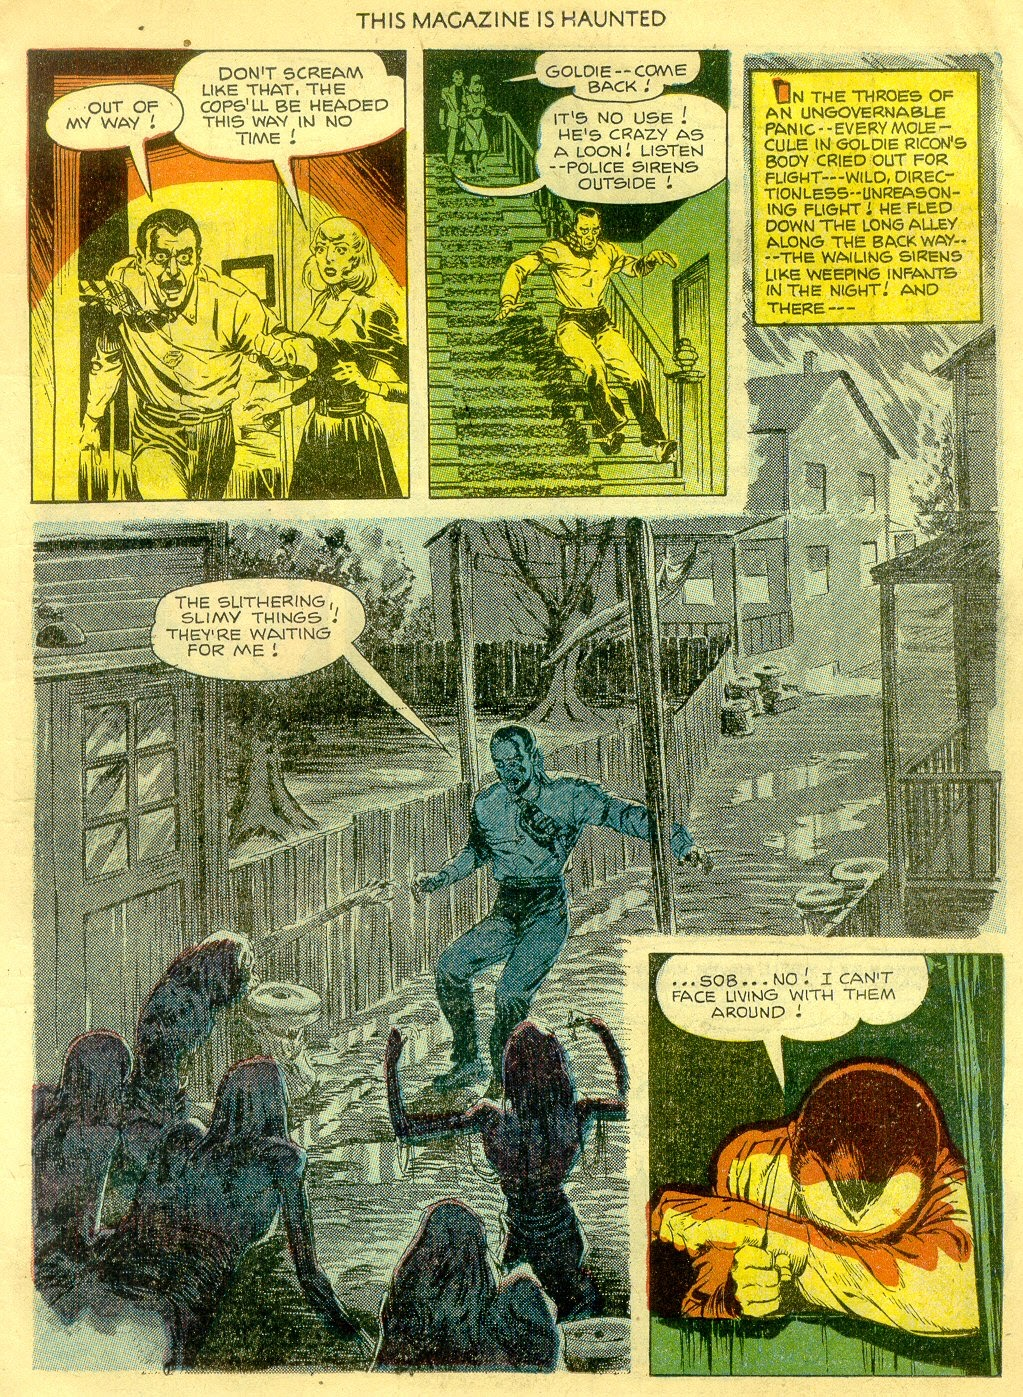 Read online This Magazine Is Haunted comic -  Issue #5 - 10